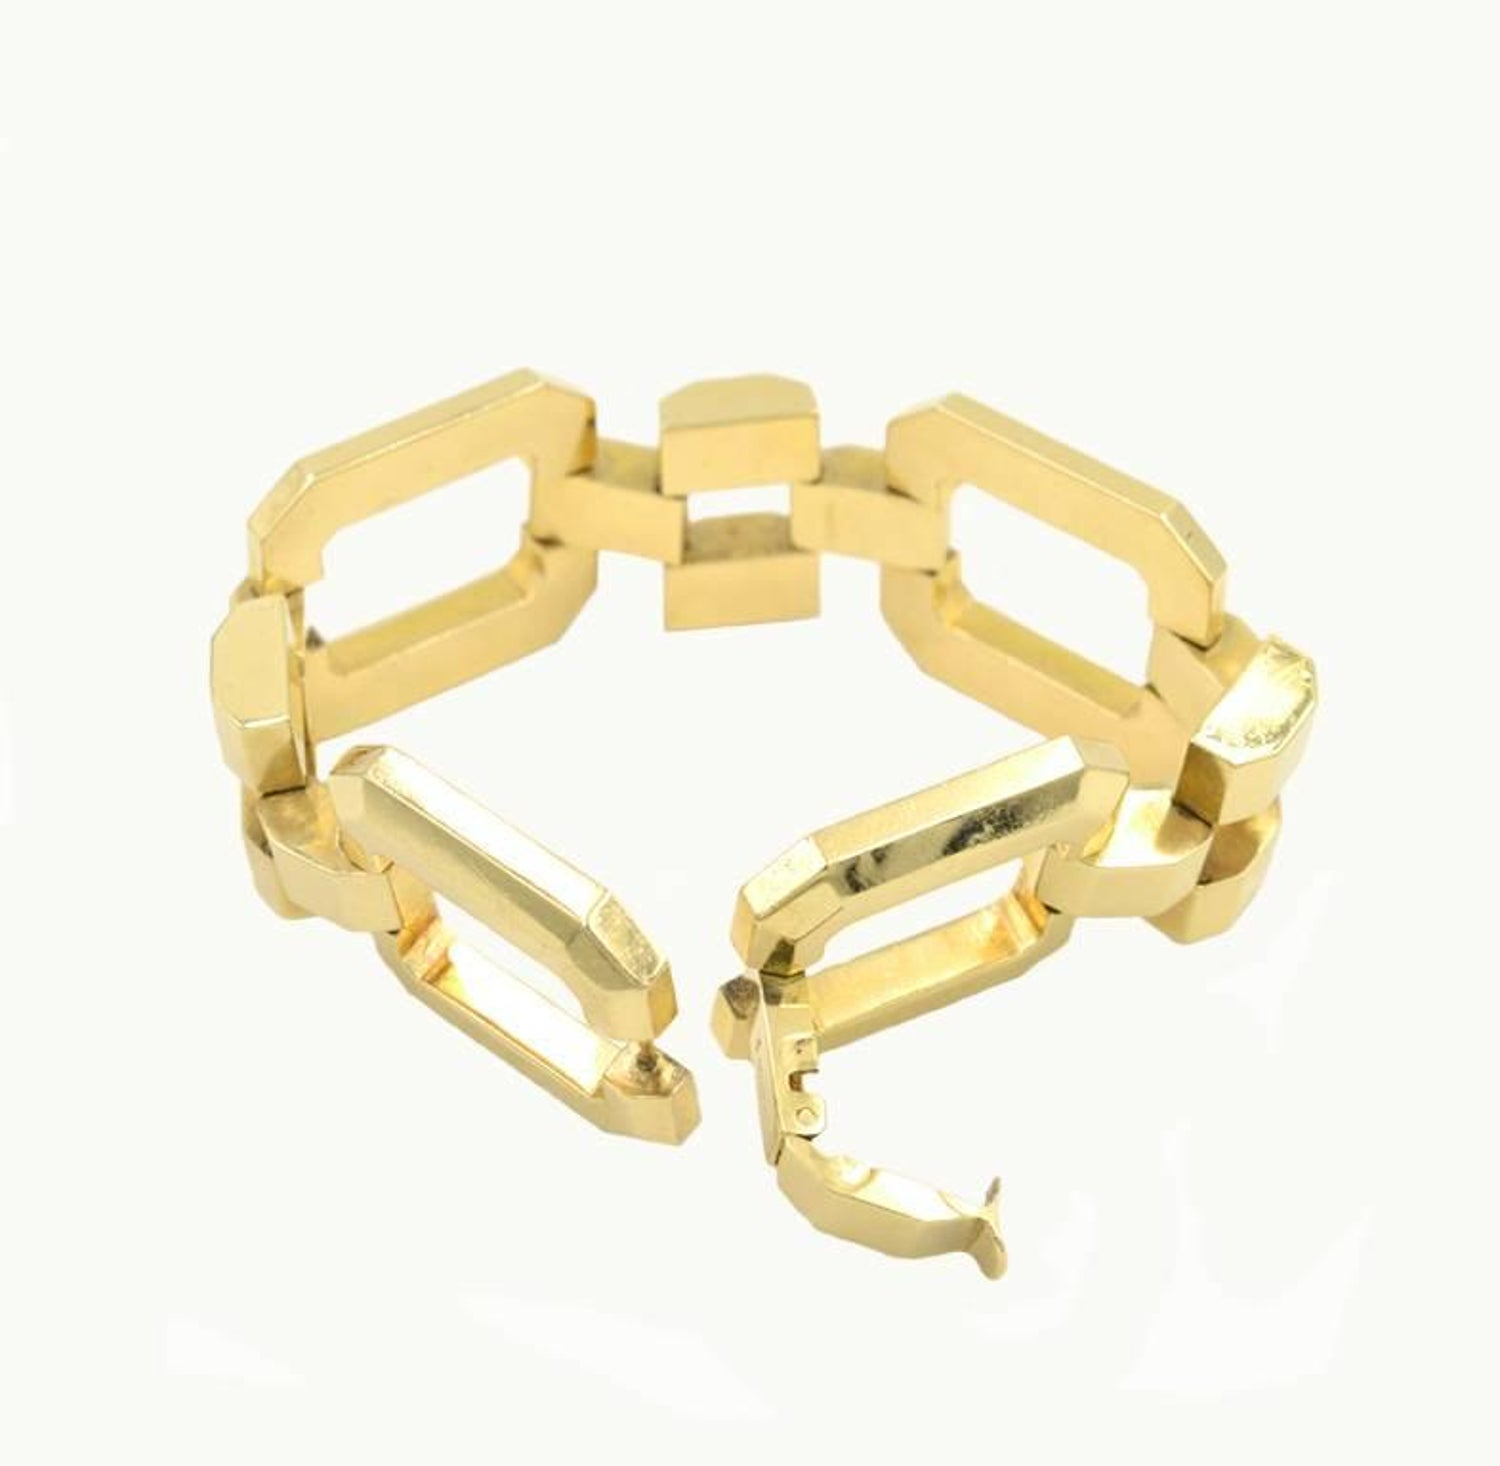 2606c0c99 Tiffany and Co. Retro 14 Karat Yellow Gold Link Bracelet, circa 1950s For  Sale at 1stdibs